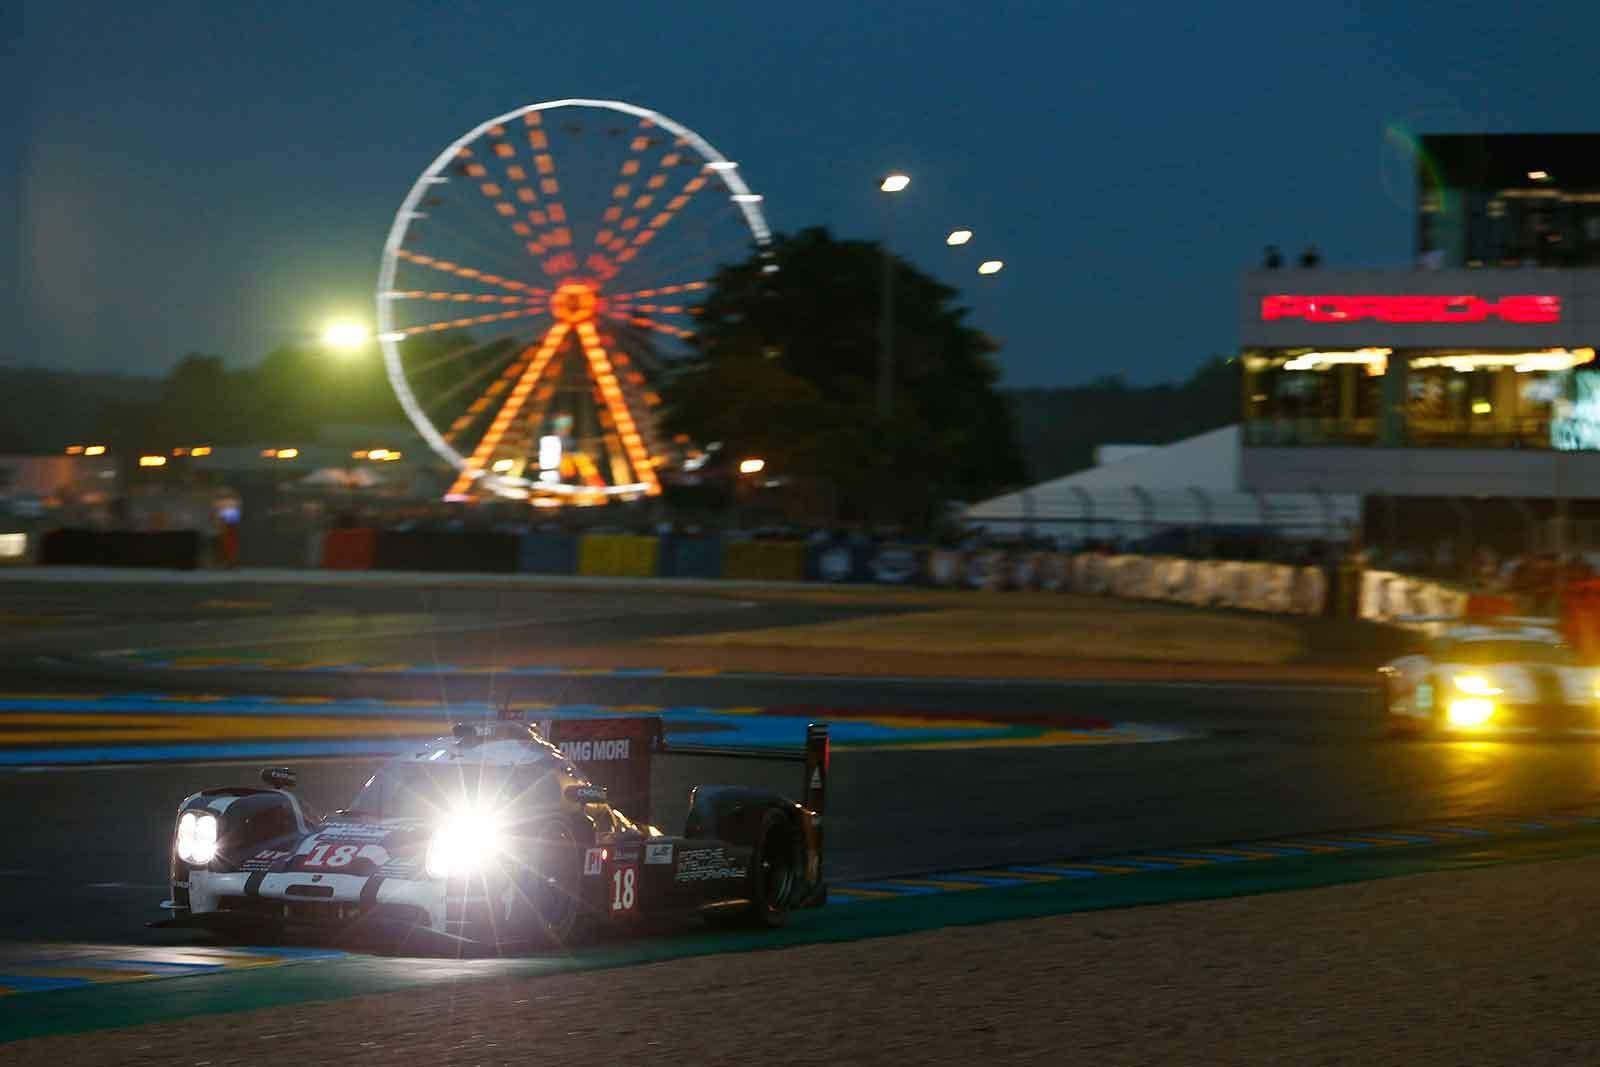 Le Mans Porsche 919 Hybrid qualifying at night (18), Porsche Team: Romain Dumas, Neel Jani, Marc Lieb